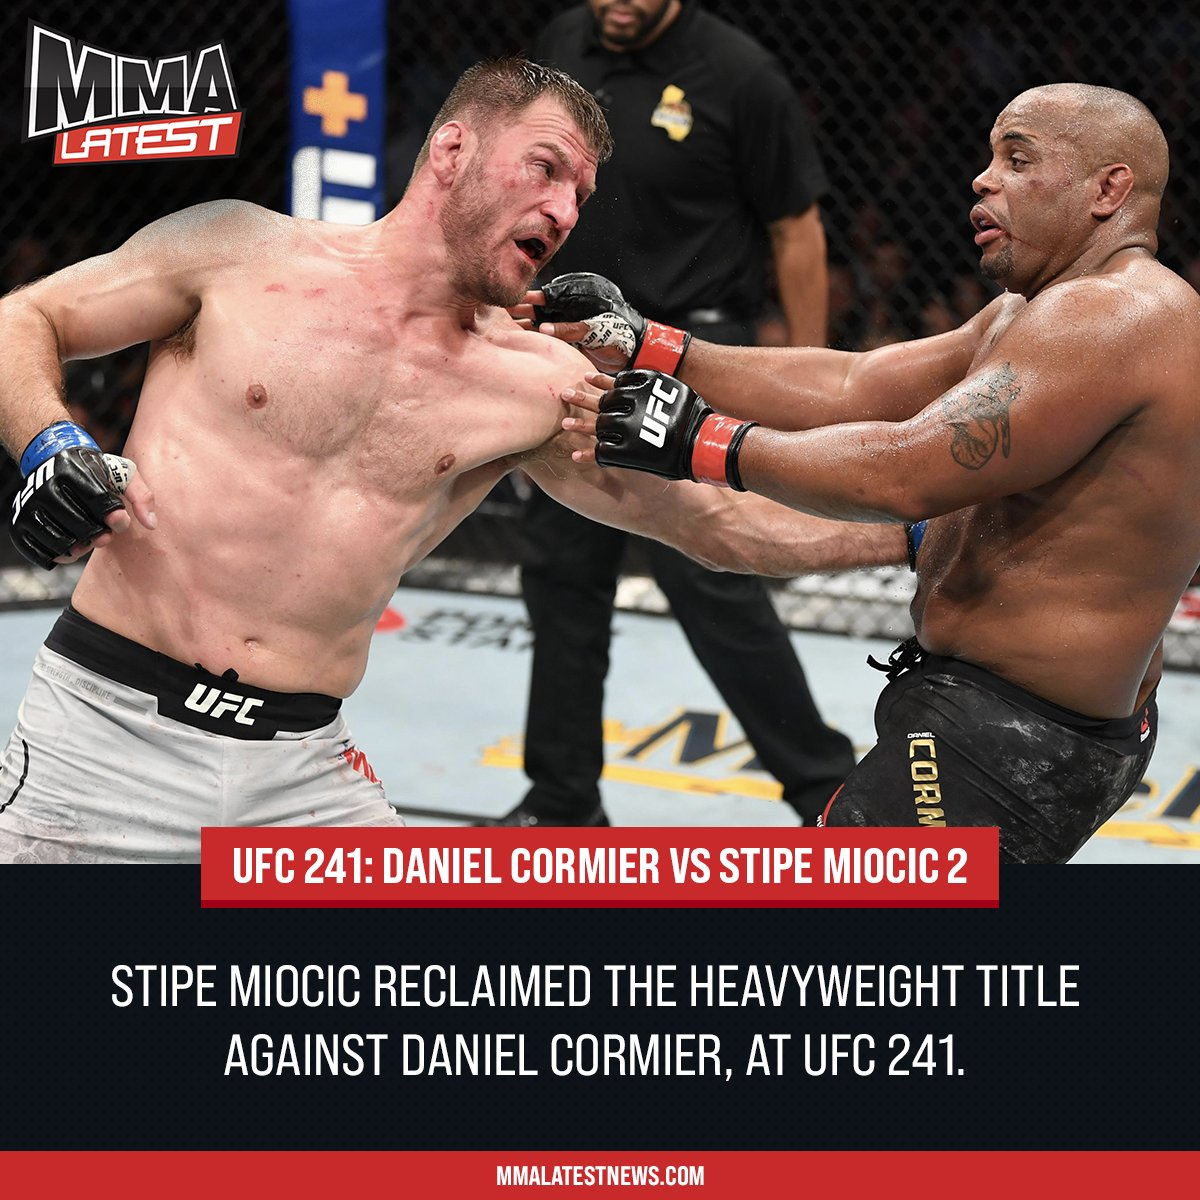 2️⃣3️⃣ Days till Christmas   @stipemiocic reclaimed the Heavyweight title at #UFC241, finishing Daniel Cormier in the fourth round. Both went through war in the second instalment, but who do you think will win the trilogy?   #UFC245 #UFC #MMA